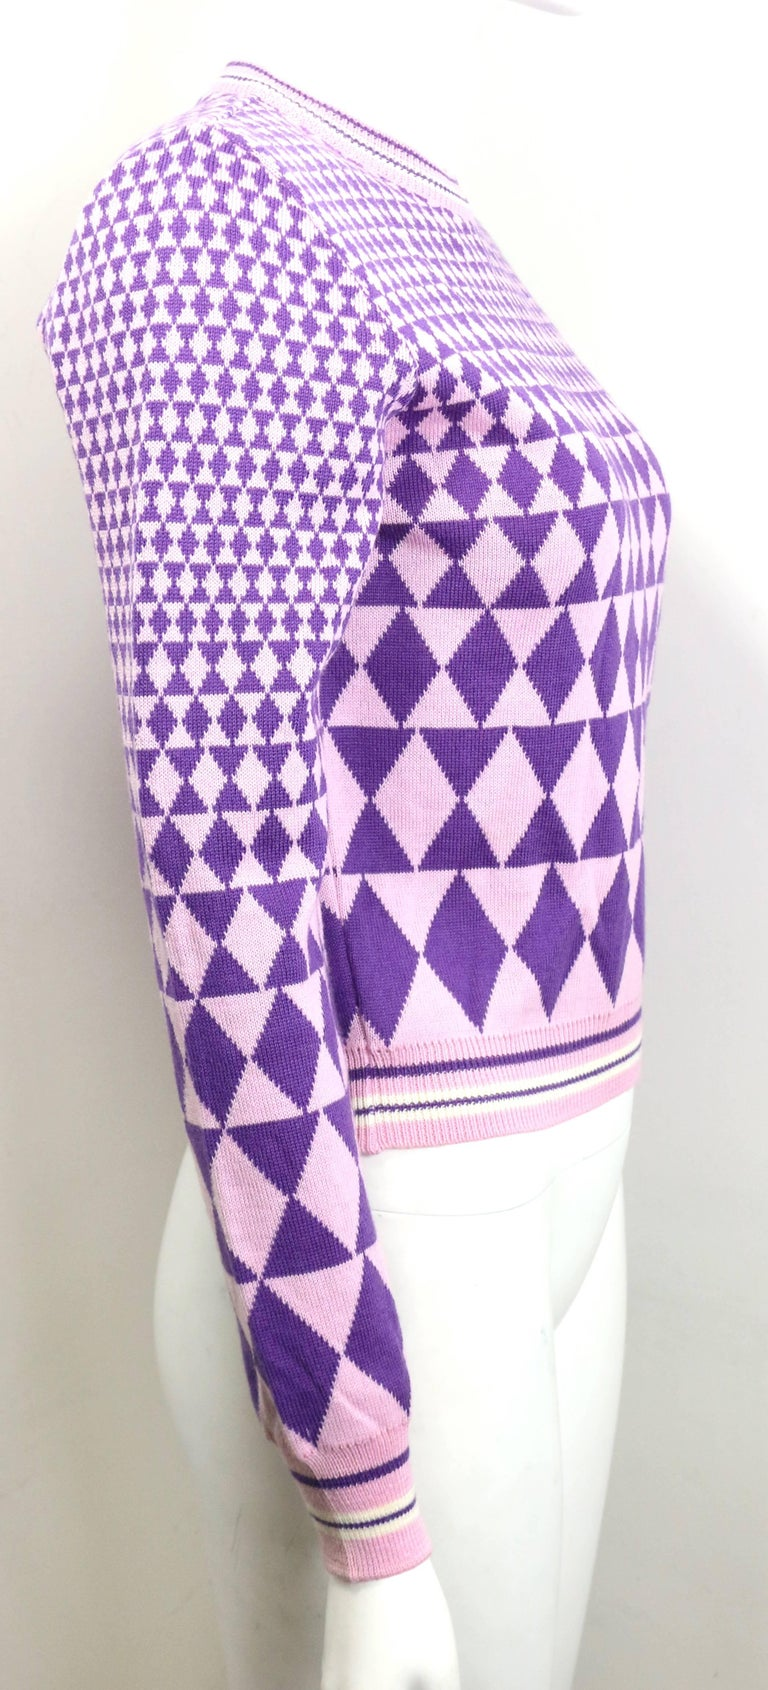 - 90s Gianni Versace Sport geometric pattern purple cropped pullover sweater.       - Ribbed white/purple stripe collar, cuffs and hem.    - Made in Italy.     - 100% Wool.     - Size 40 Italy.     - Shoulder: 14 inches. Sleeve: 23 inches. Bust: 34